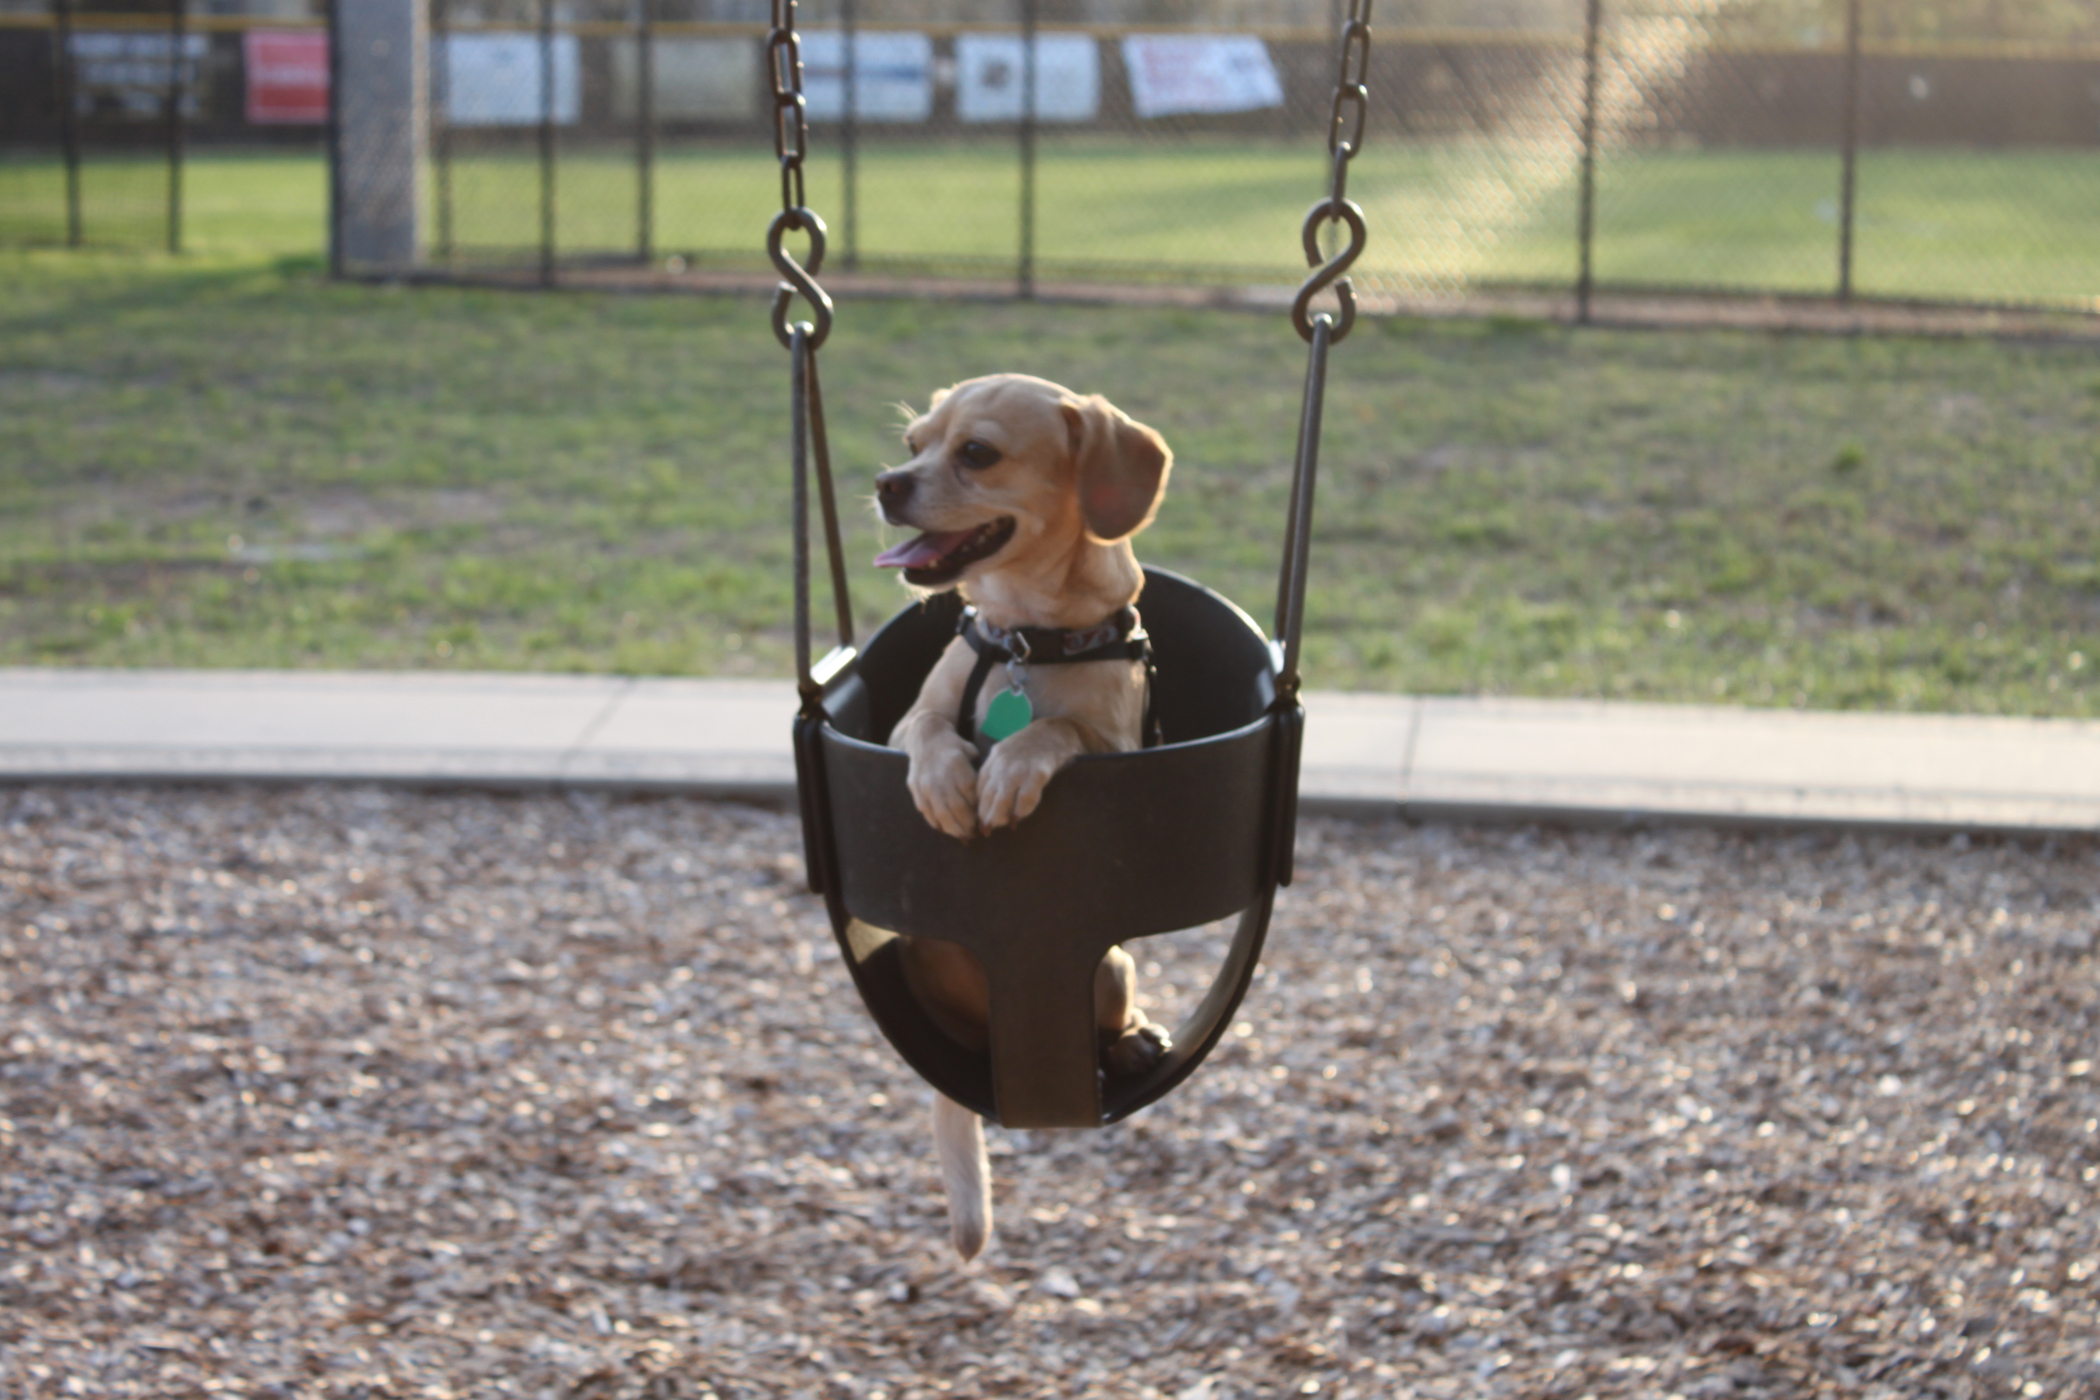 chilling in the swing